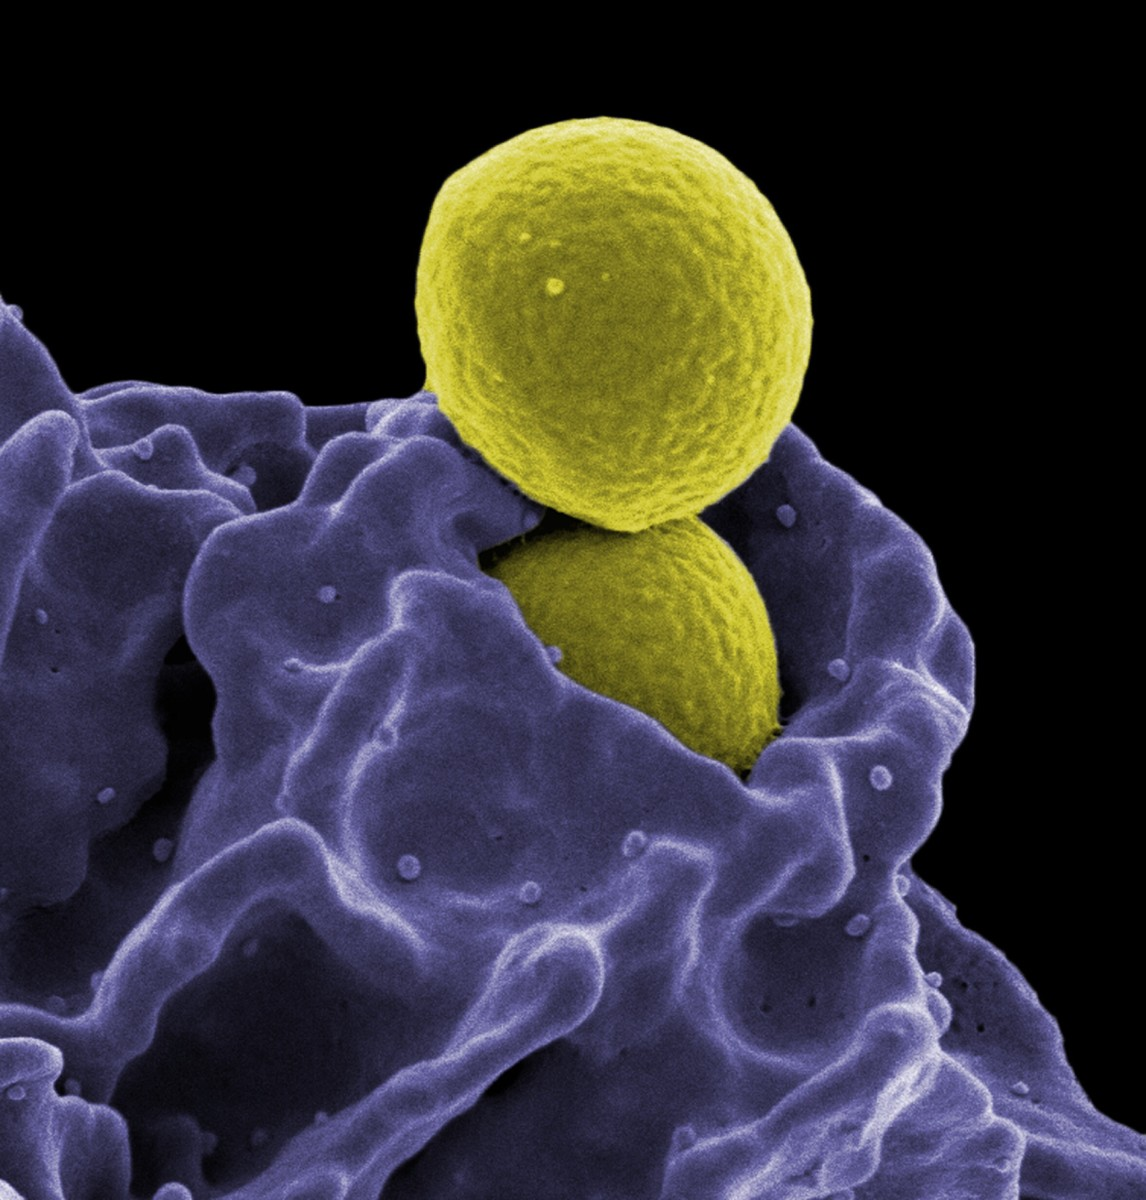 Neutrophils protect us from fungal spores and bacteria. In this photo a neutrophil is ingesting an MRSA bacterium. Both the neutrophil and the bacteria are colorized.